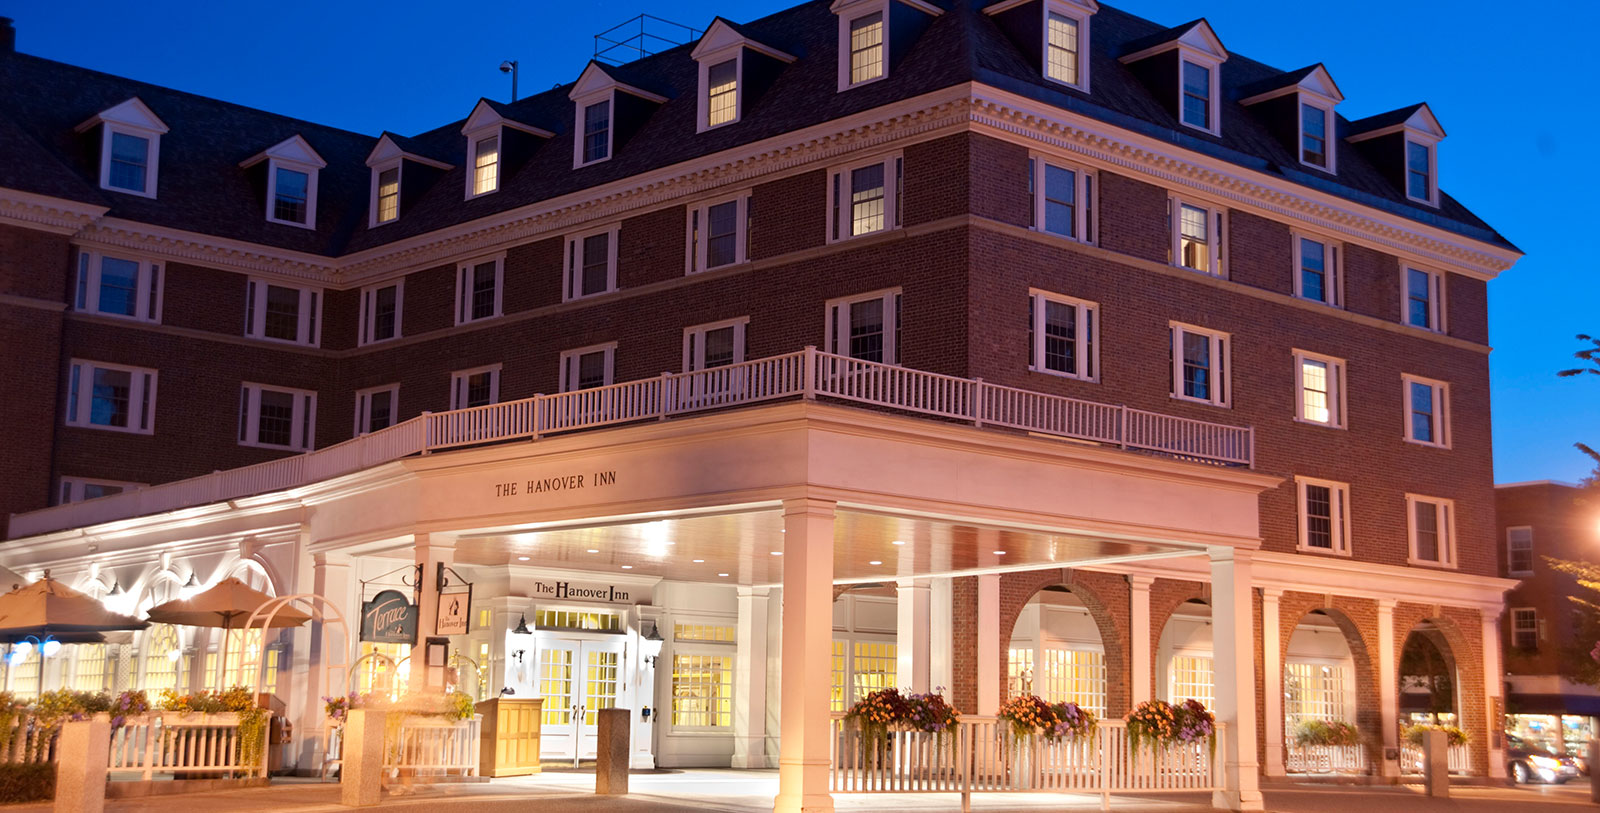 Image of hotel exterior Hanover Inn Dartmouth, 1780, Member of Historic Hotels of America, in Hanover, New Hampshire, Overview